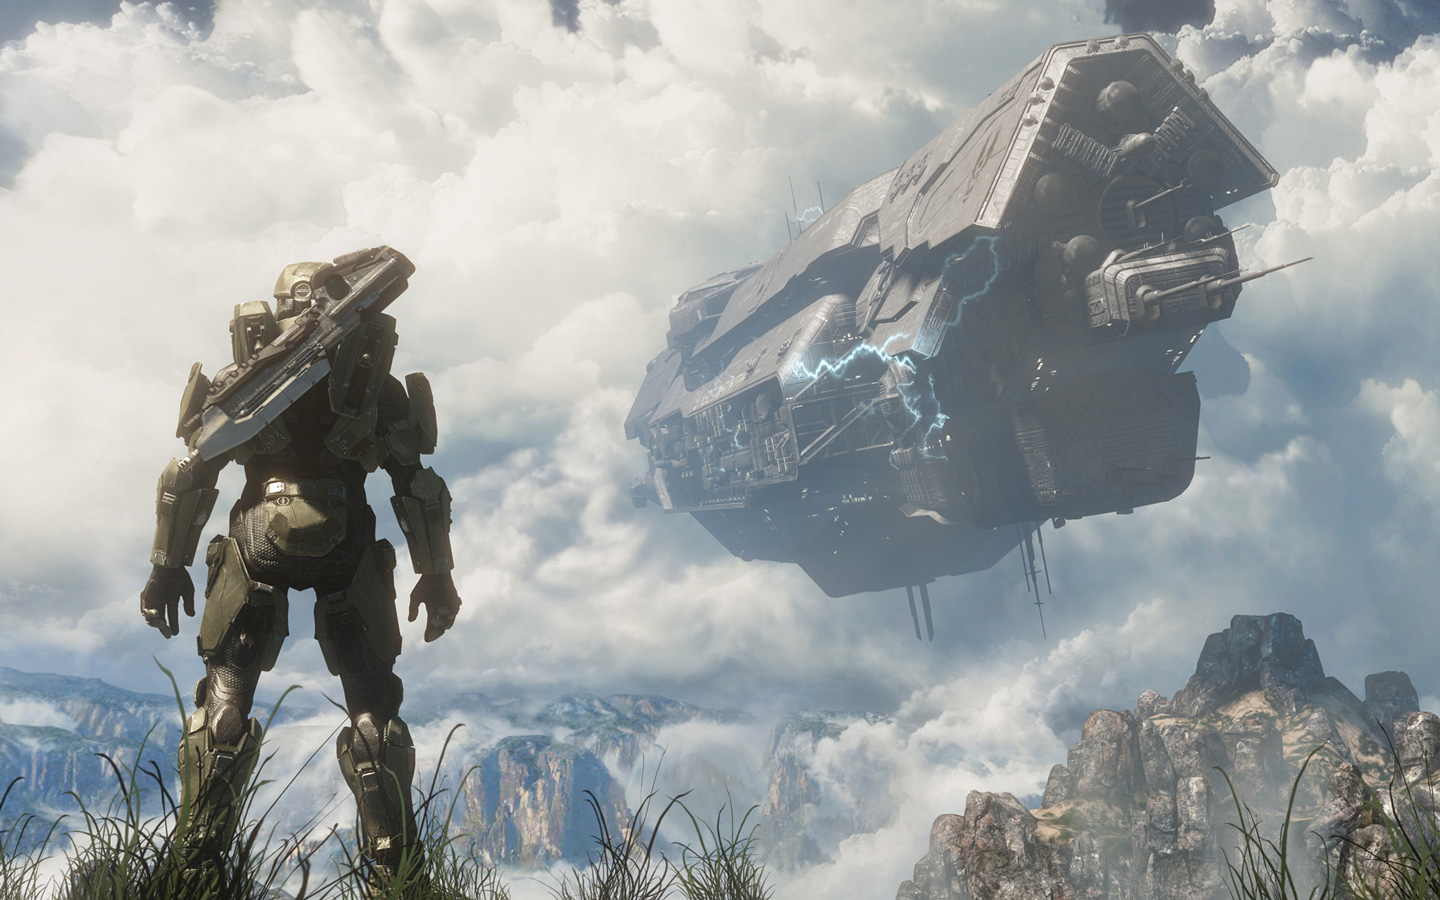 Halo 4 Wallpaper in 1440x900